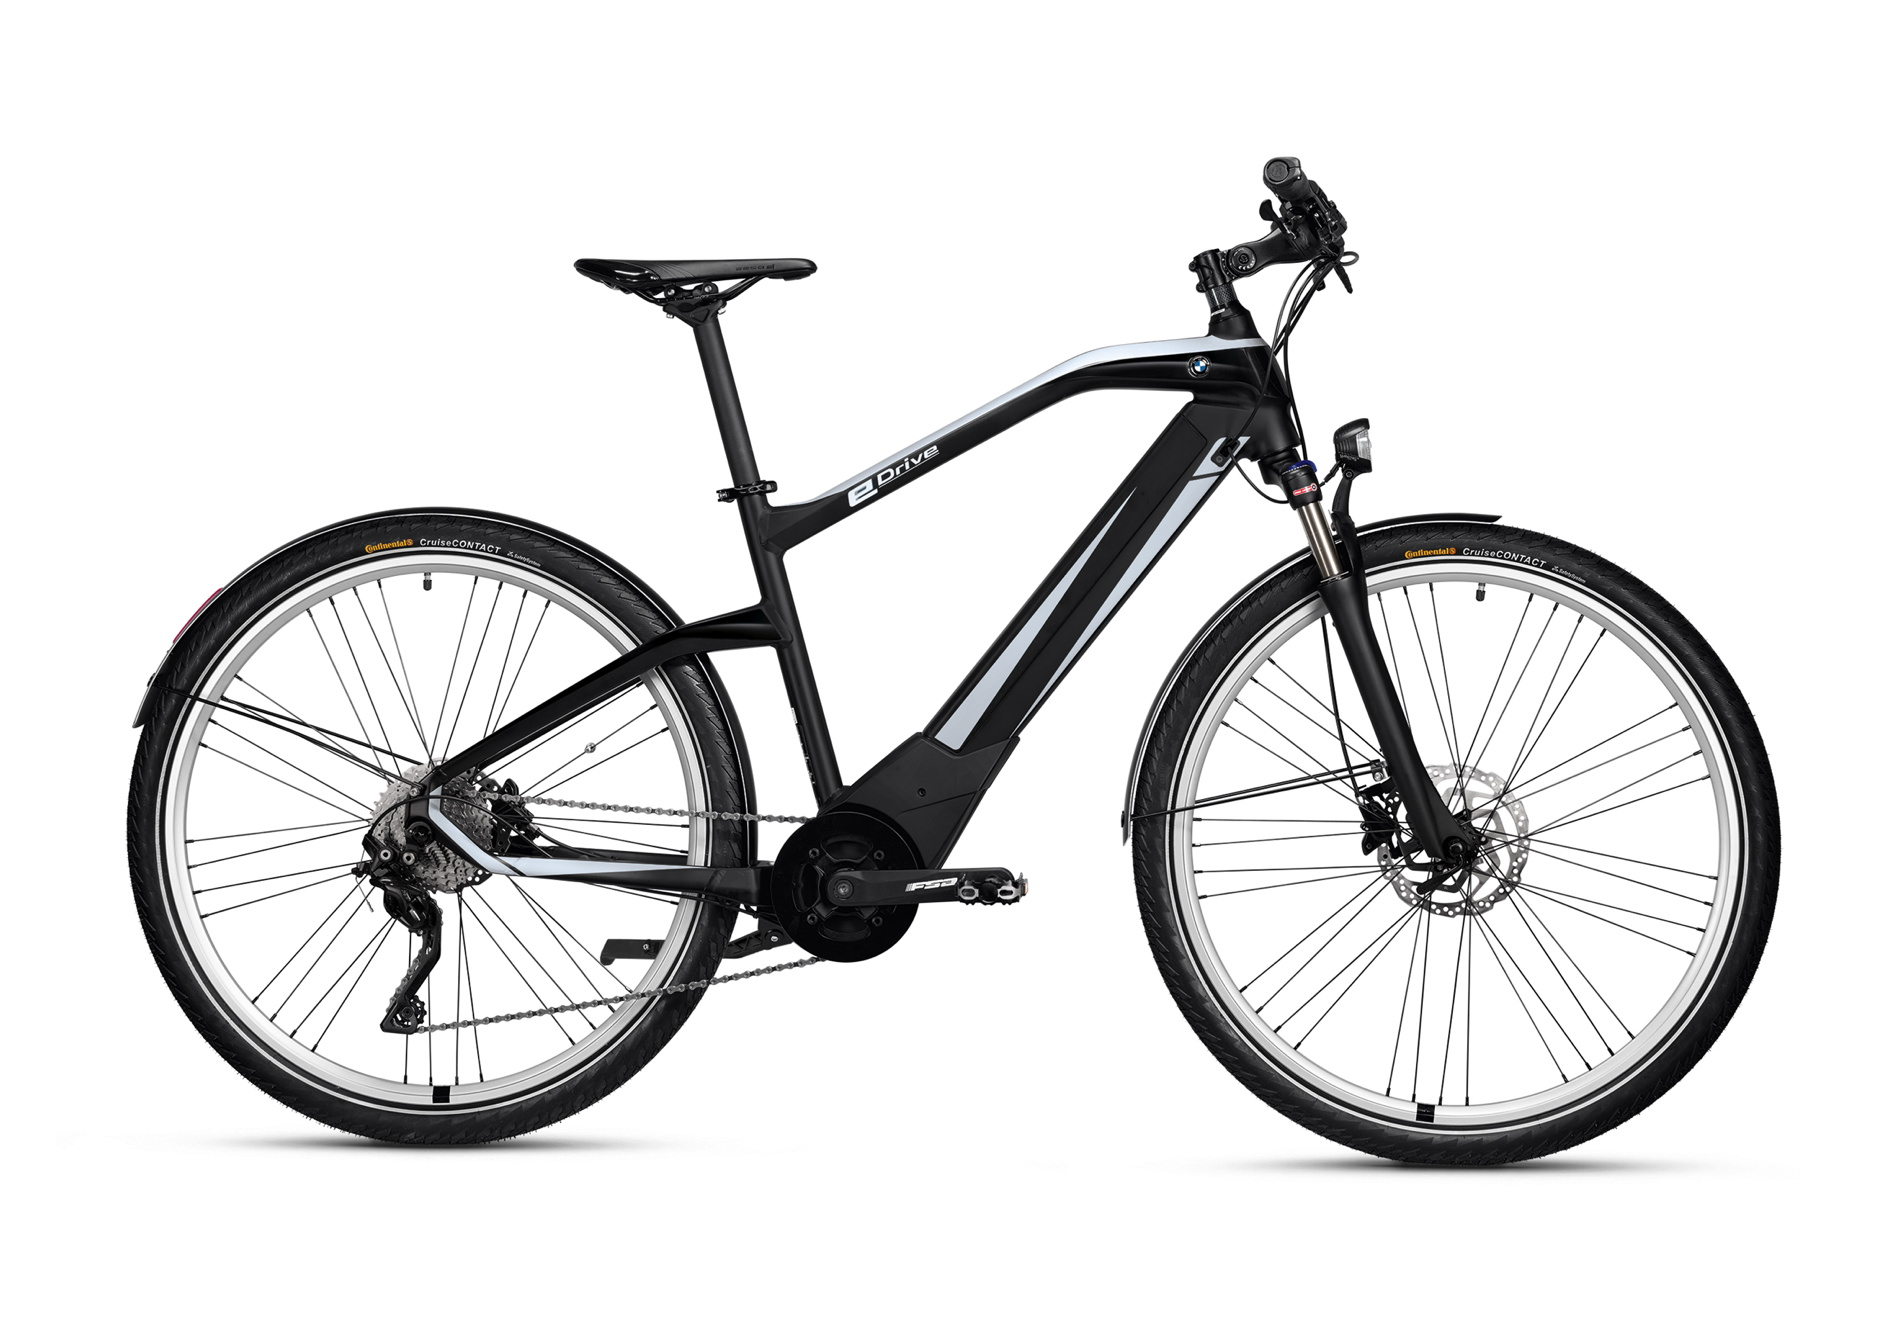 BMW Active Hybrid E-Bike 700C